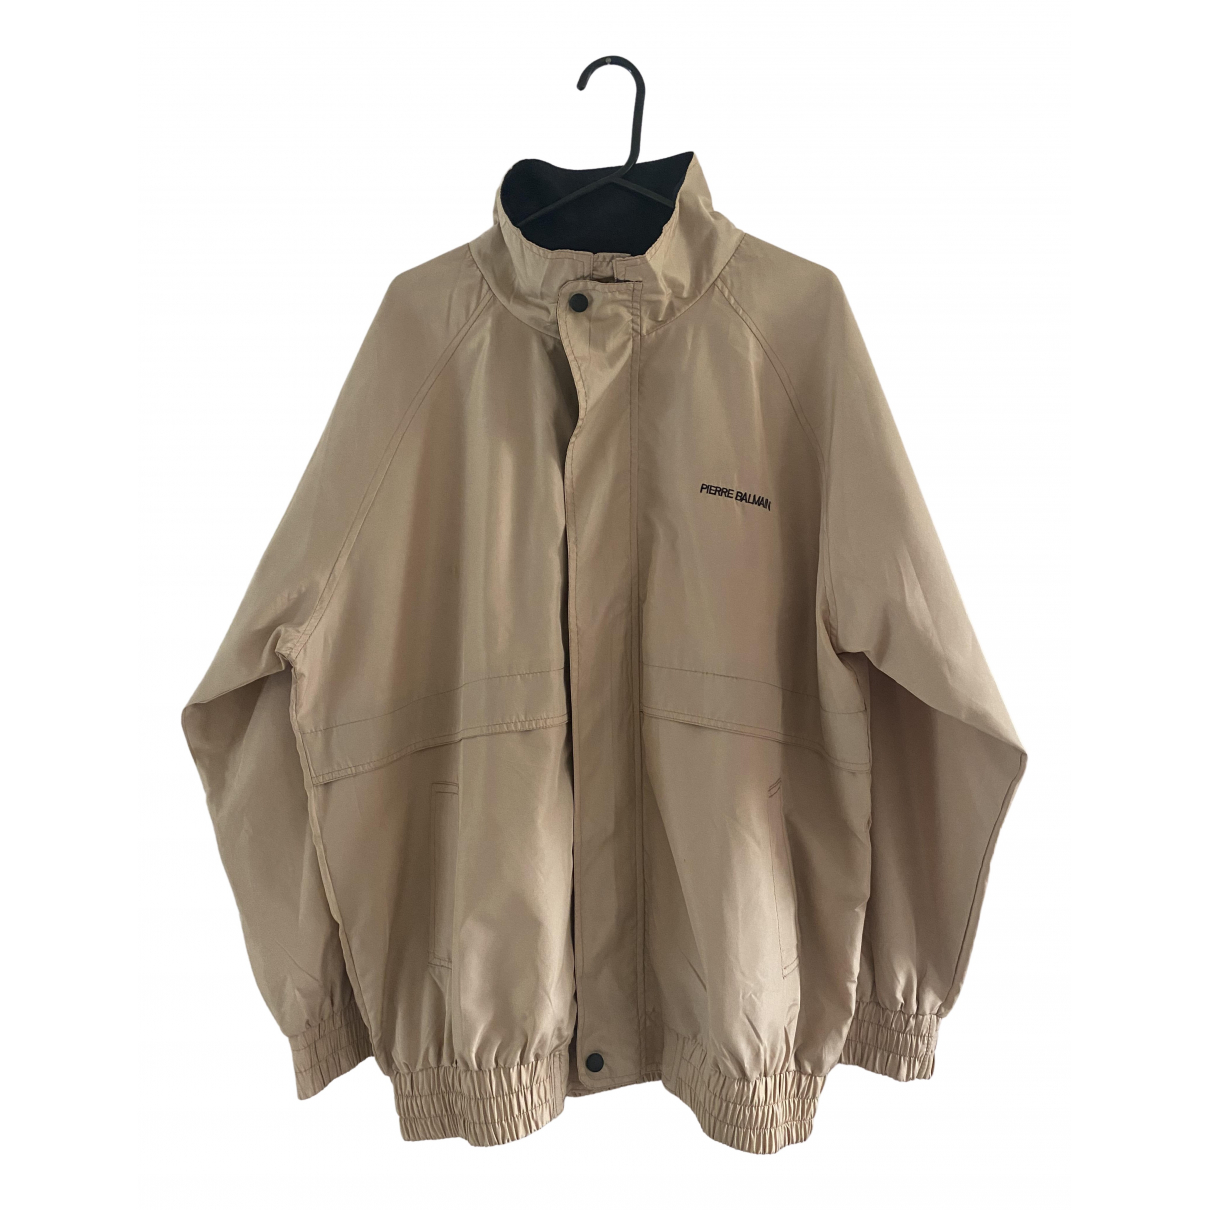 Pierre Balmain \N Beige jacket  for Men XL International